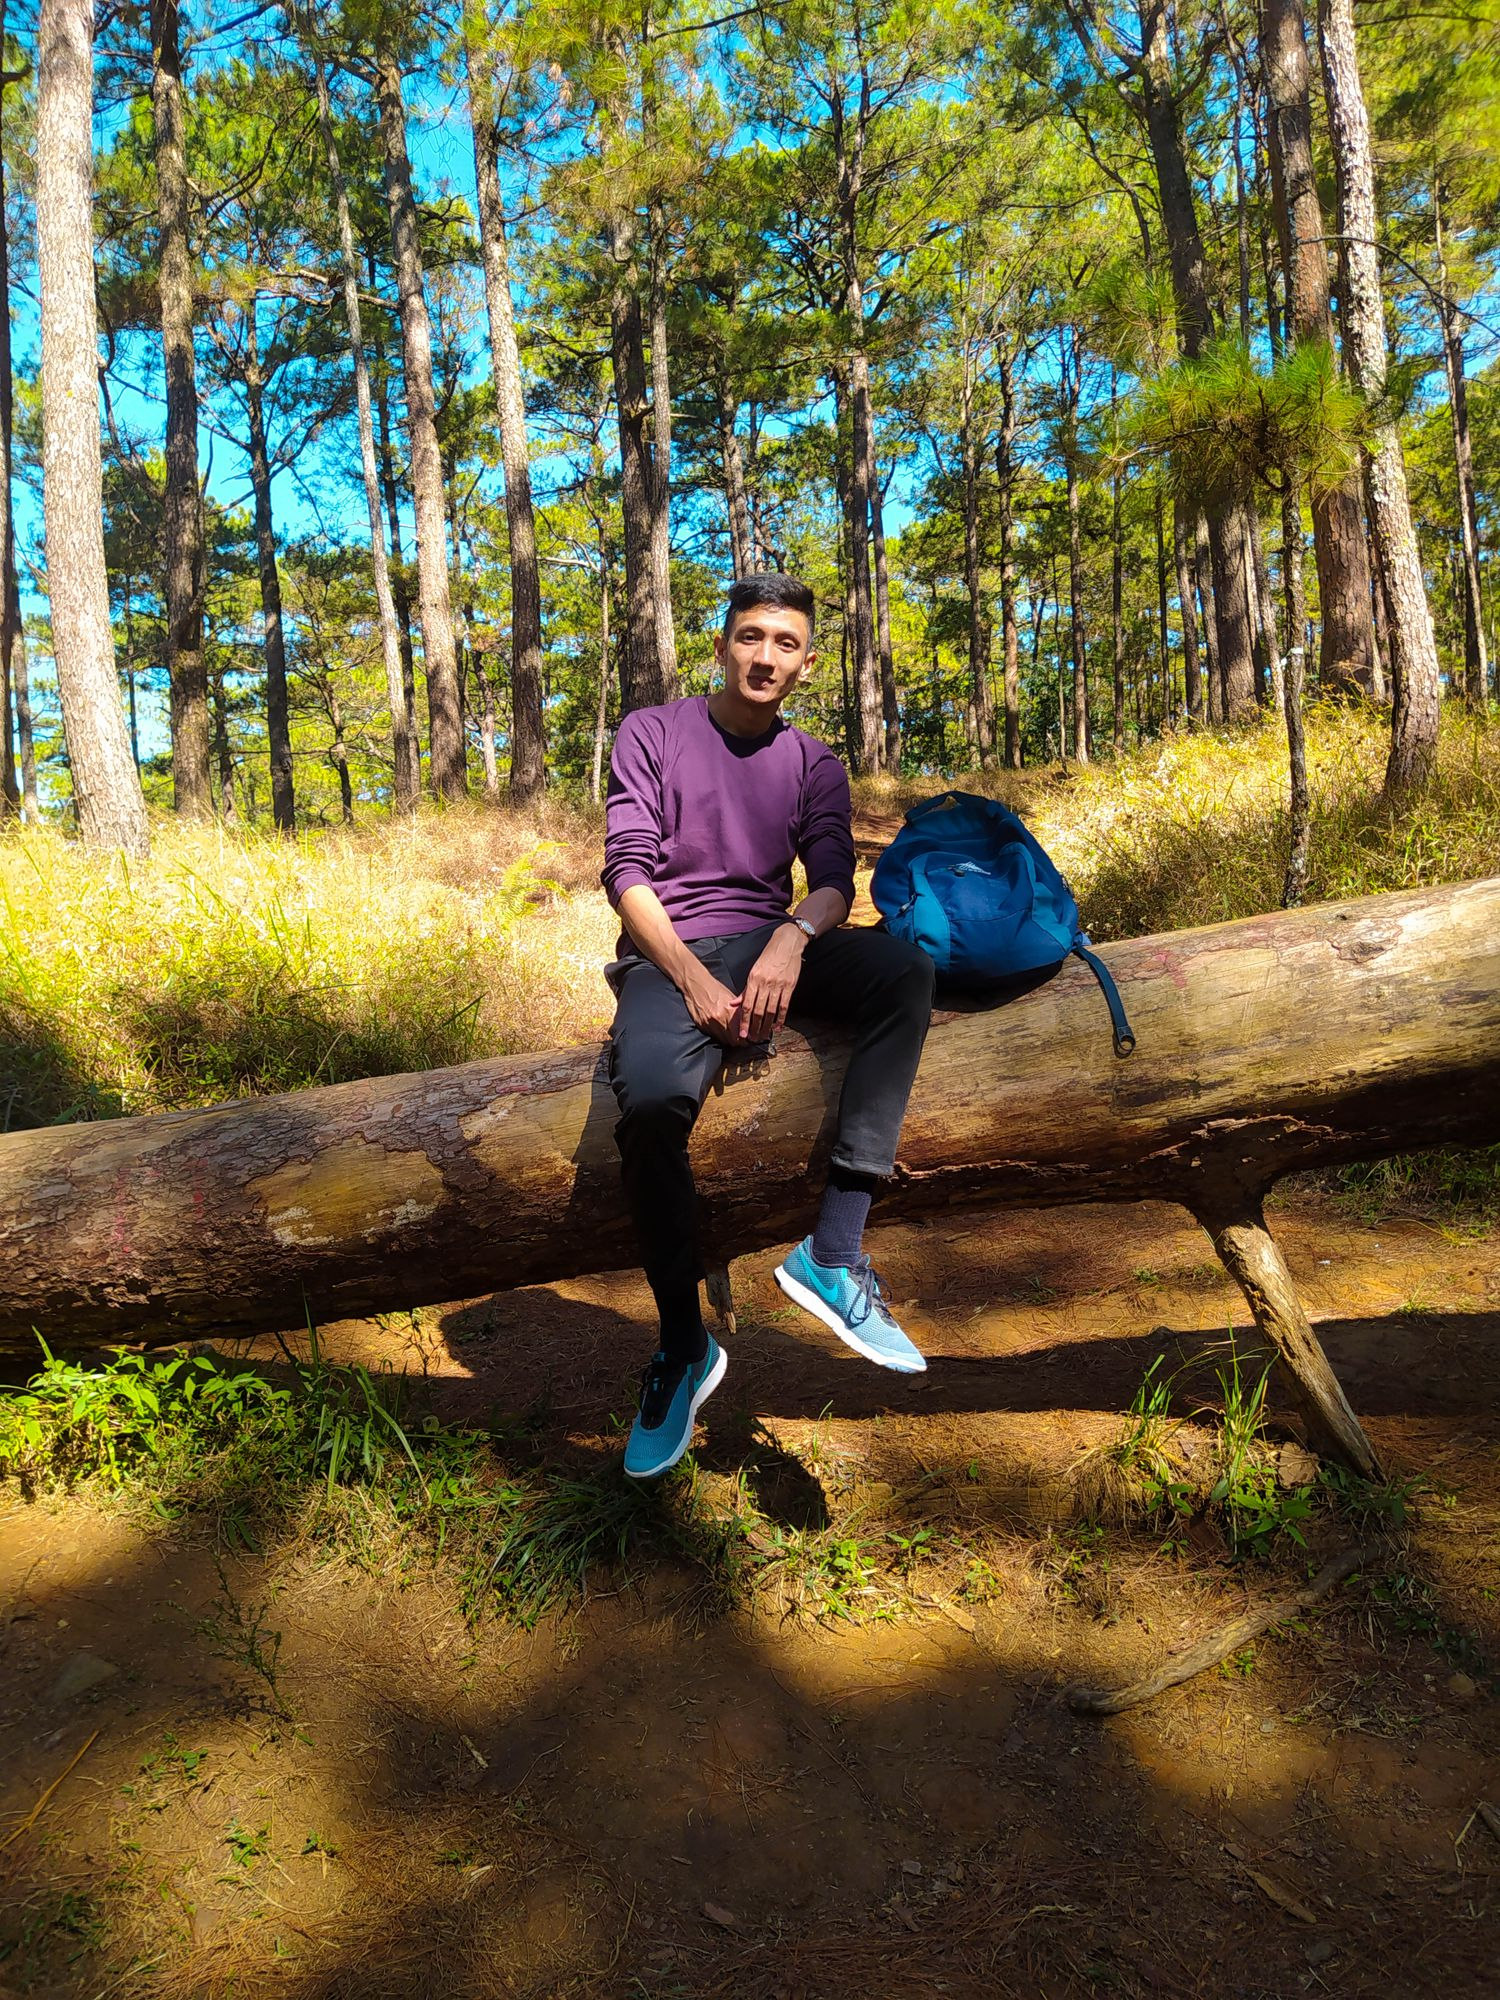 A man sitting on a log in the middle of the woods with a backpack beside him somewhere along the Eco-Trail